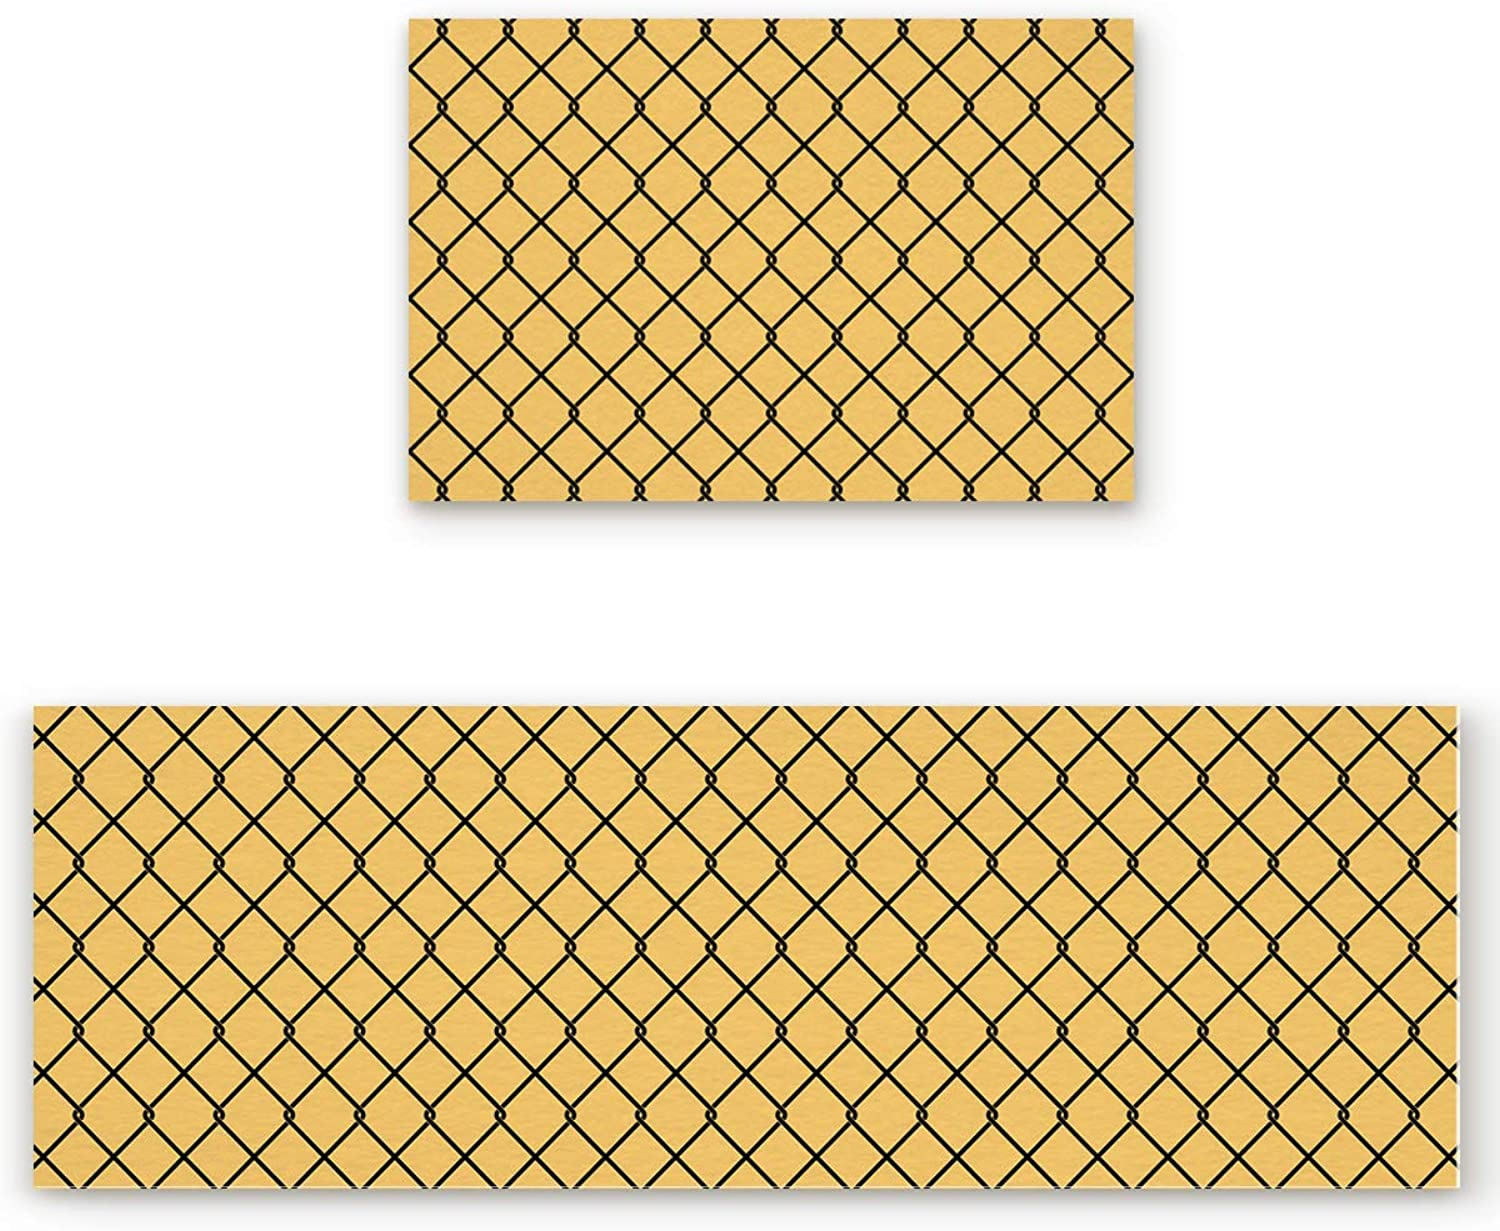 Savannan 2 Piece Non-Slip Kitchen Bathroom Entrance Mat Absorbent Durable Floor Doormat Runner Rug Set - Modern Geometric Grid Pattern - Yellow